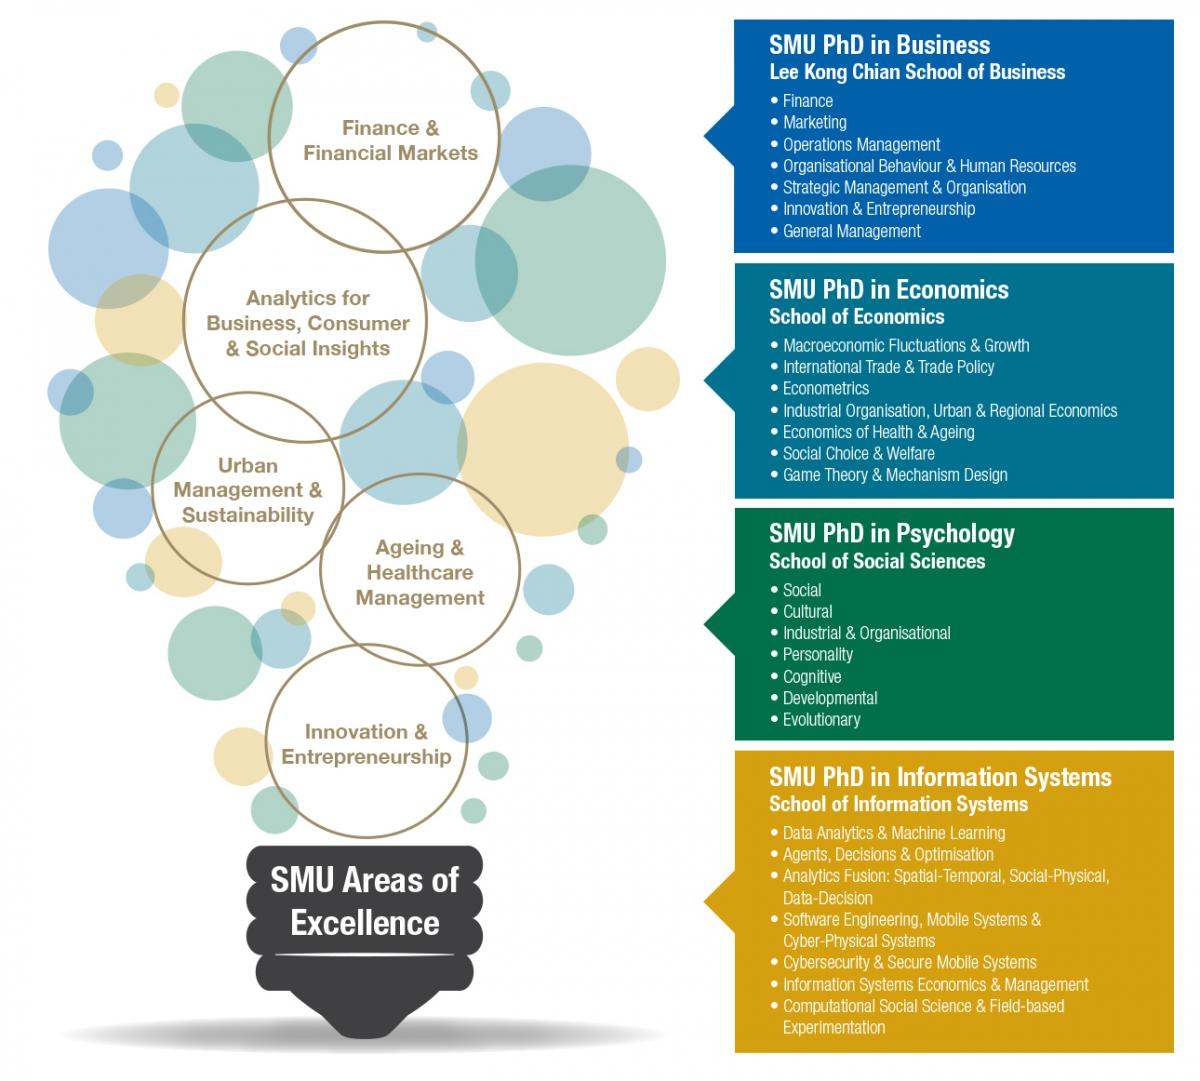 SMU Research Areas of Excellence